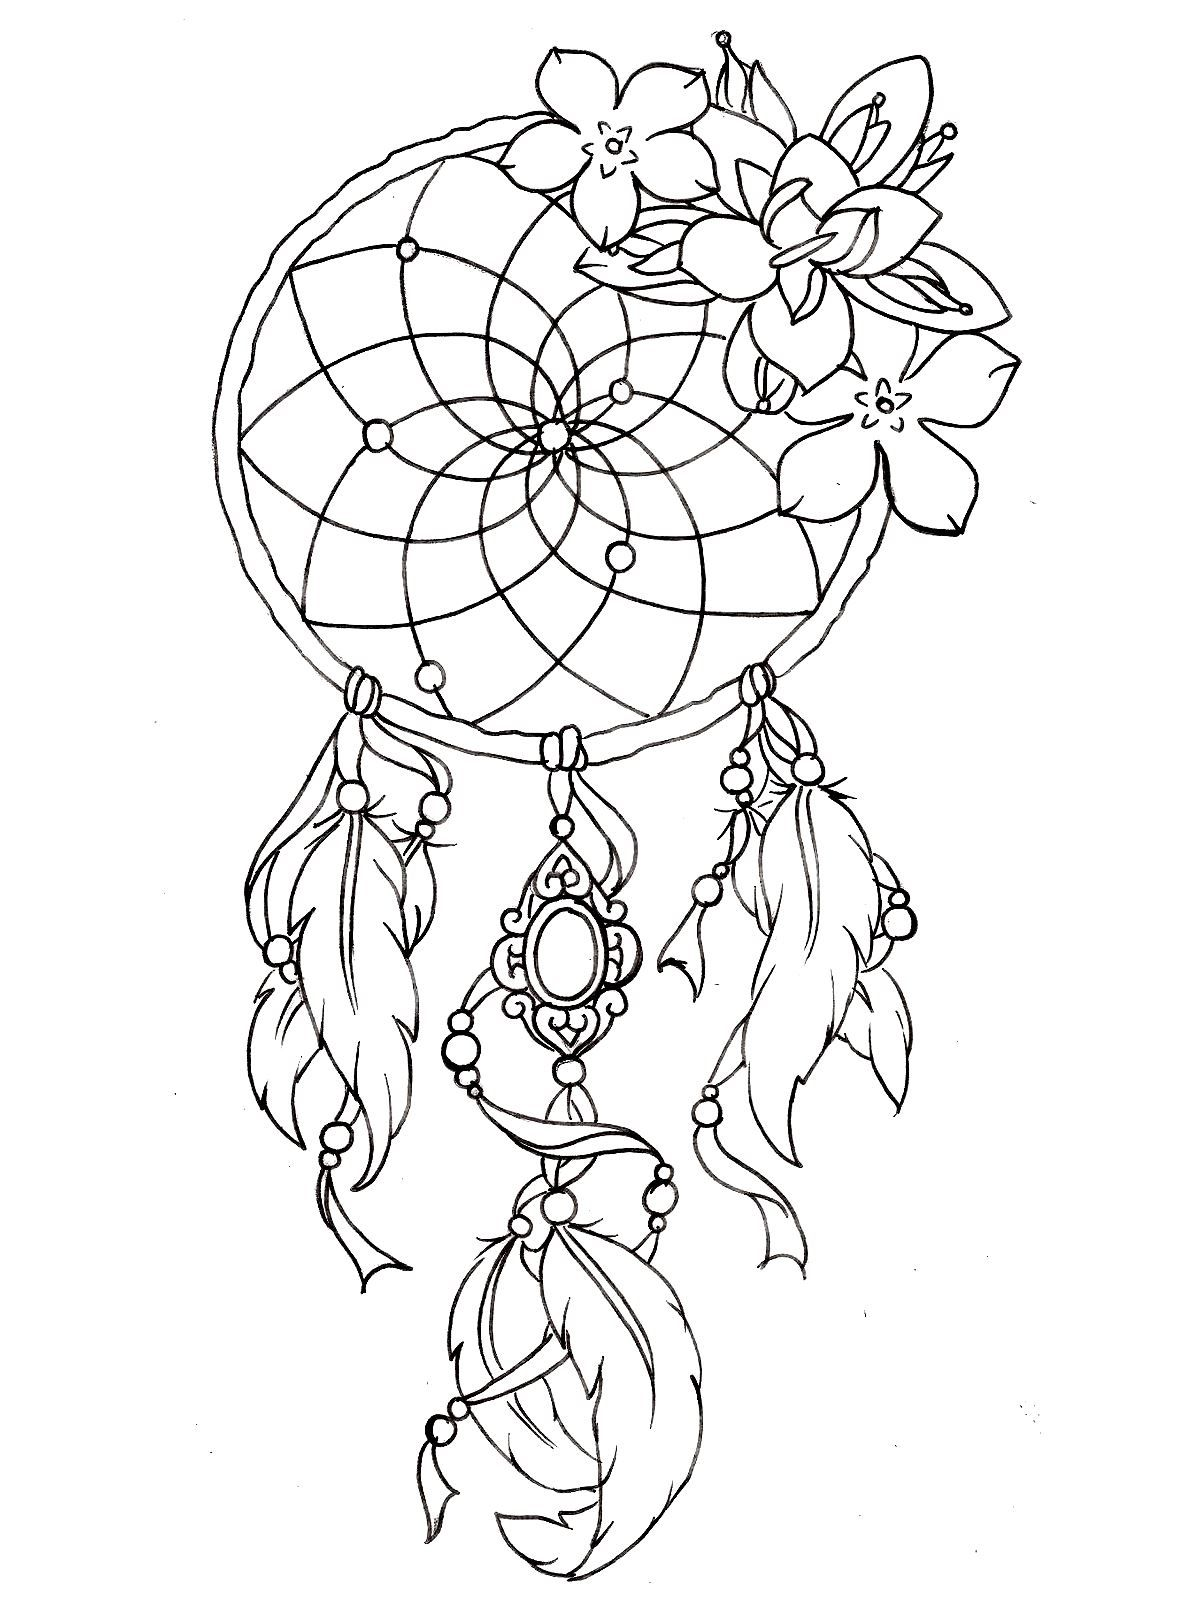 Tattoo designs coloring book - Free Coloring Page Coloring Dreamcatcher Tattoo Designs Coloring Dreamcatcher Tattoo